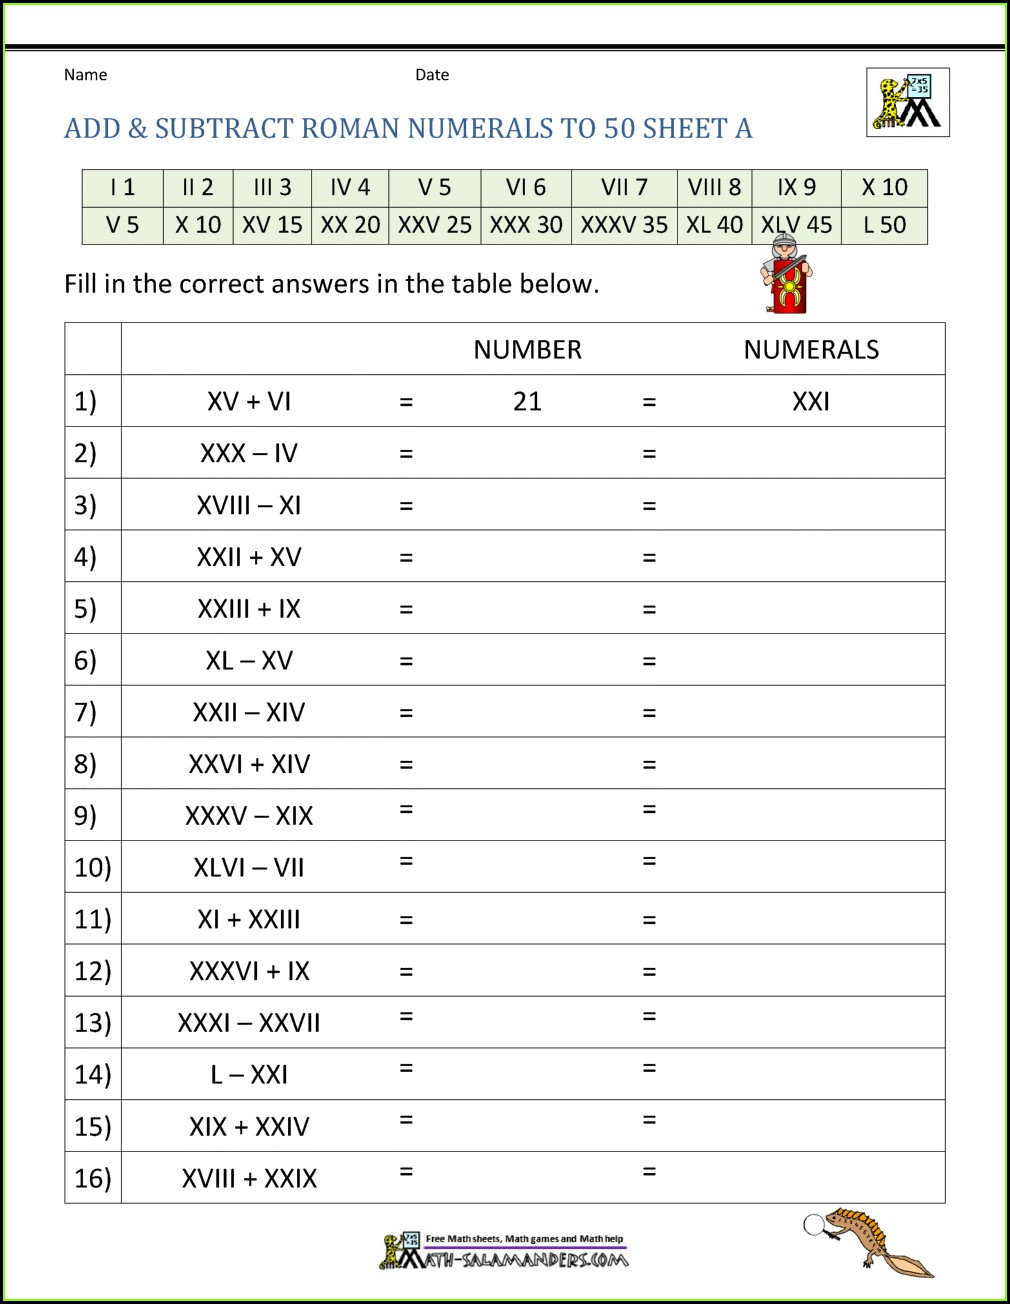 Roman Numerals Worksheet For Class 5